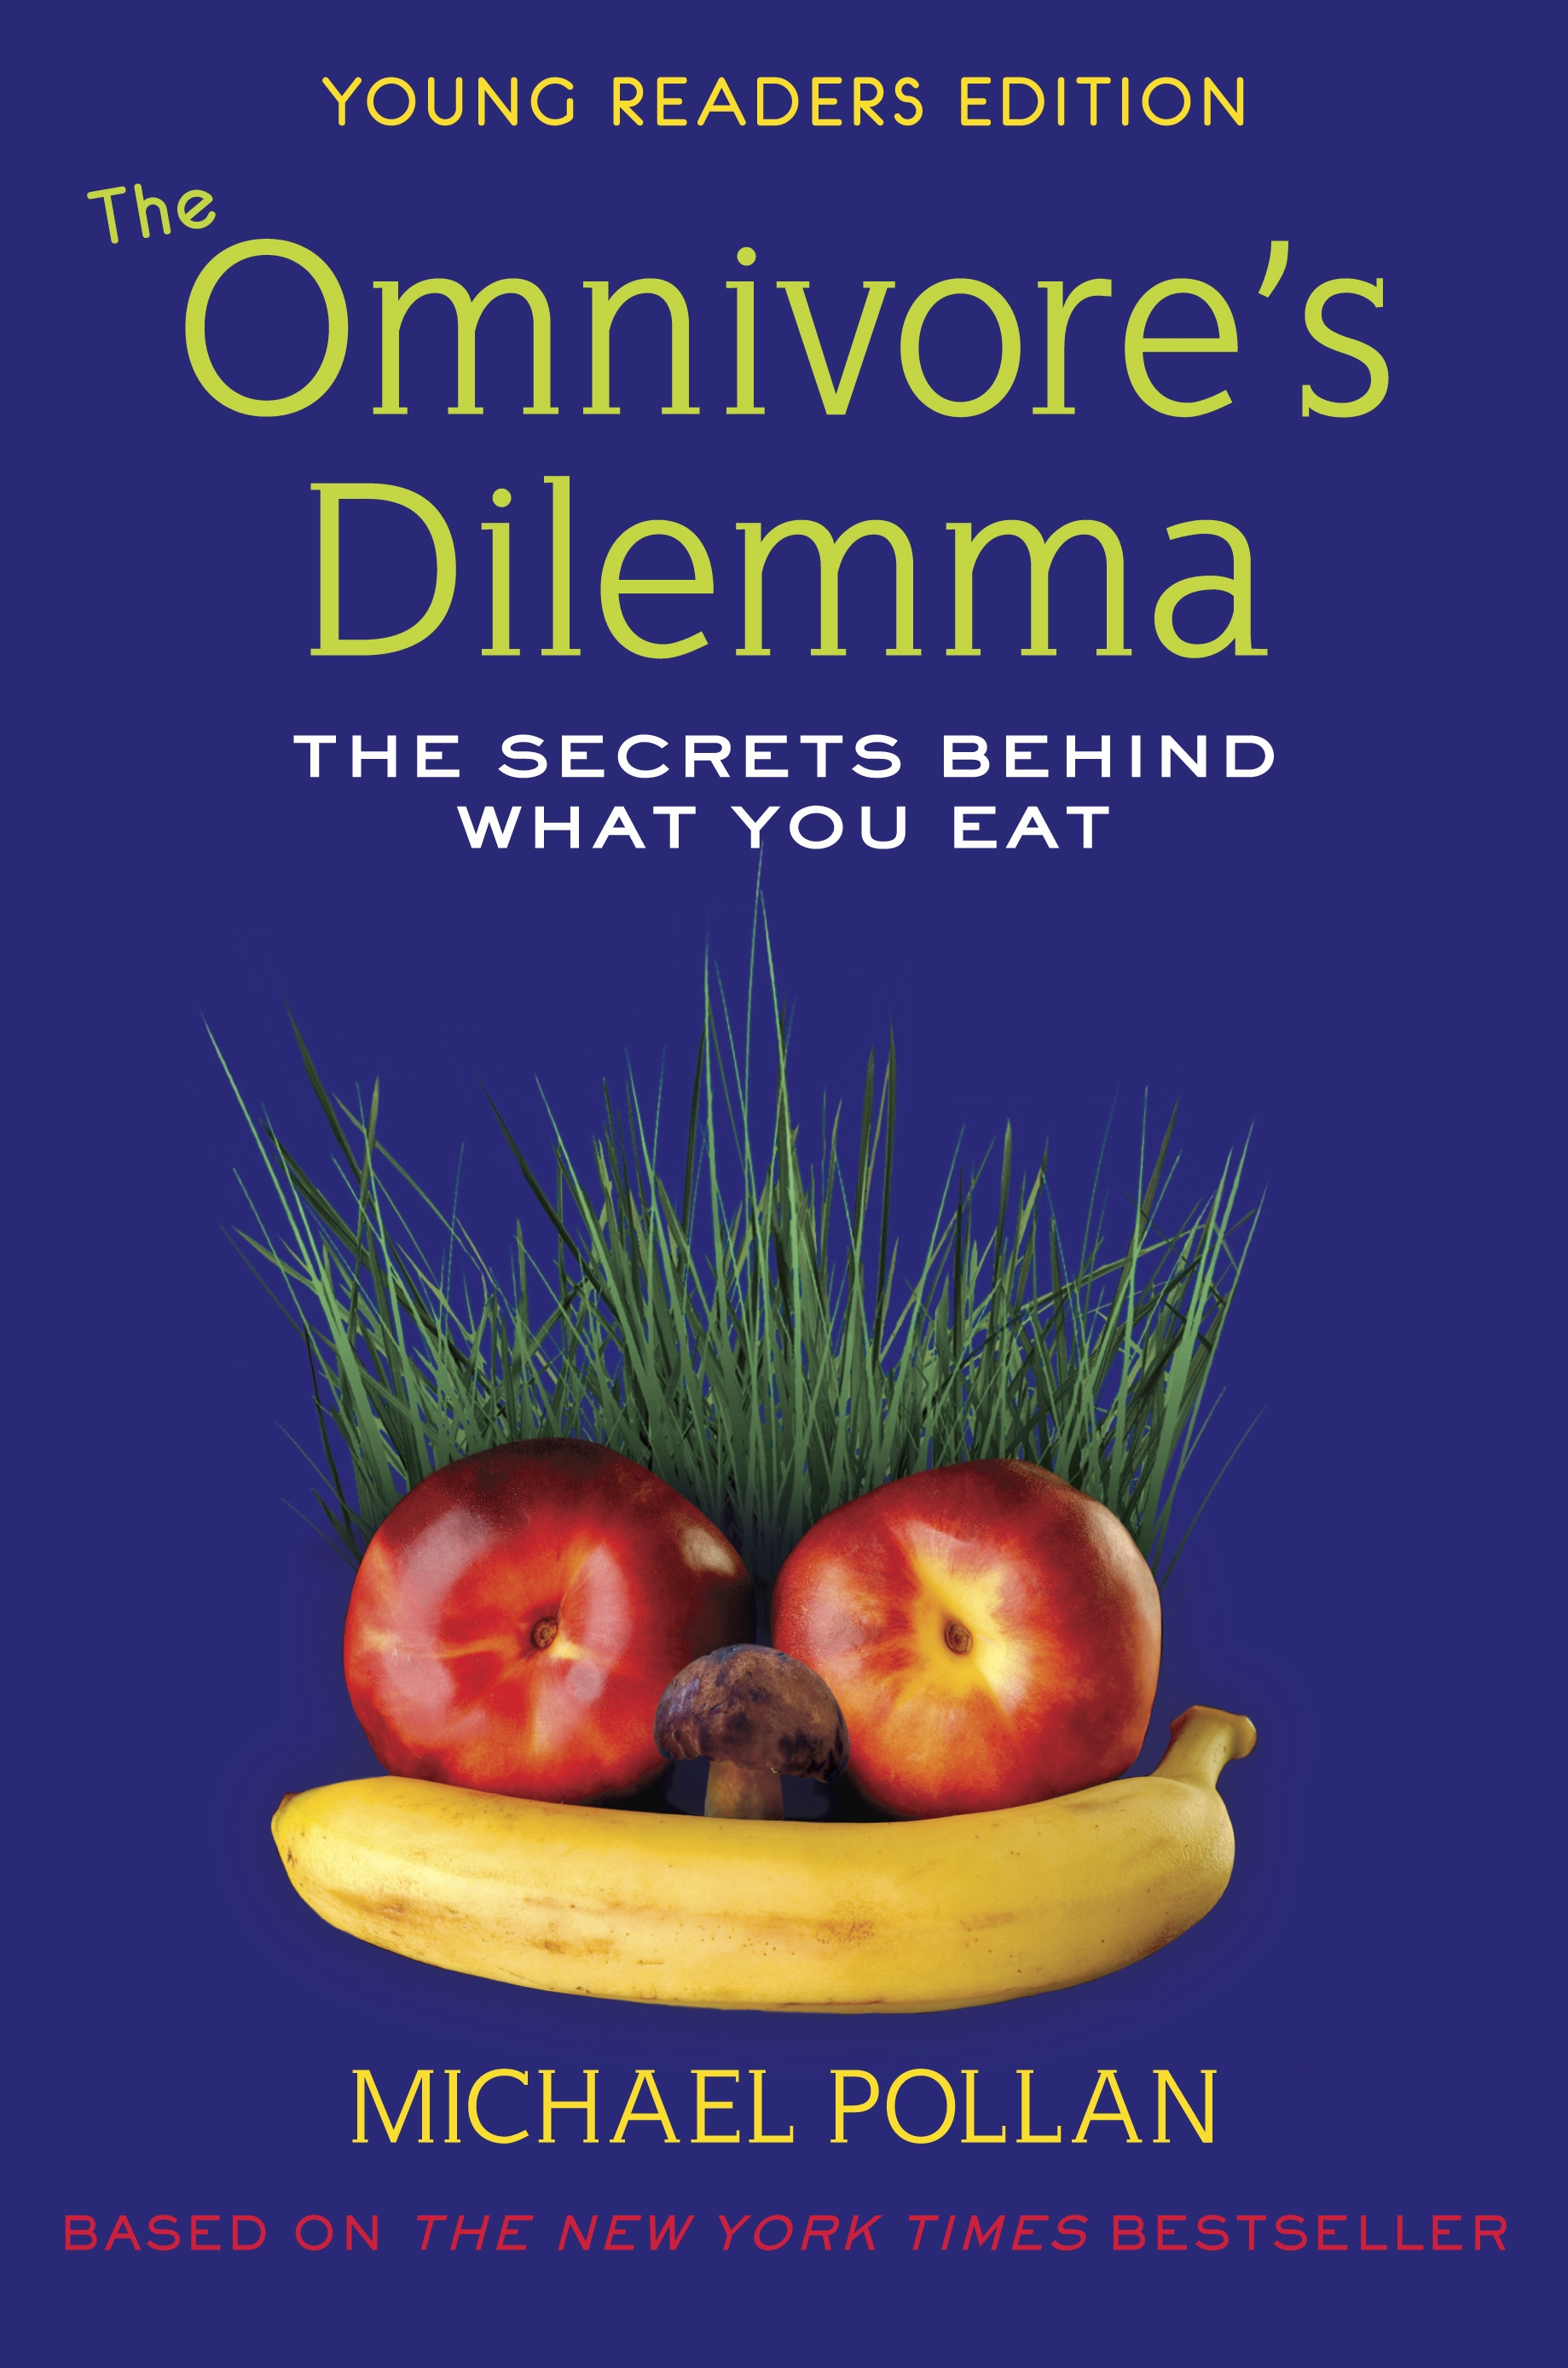 omnivores-dilemma-young-readers.jpg